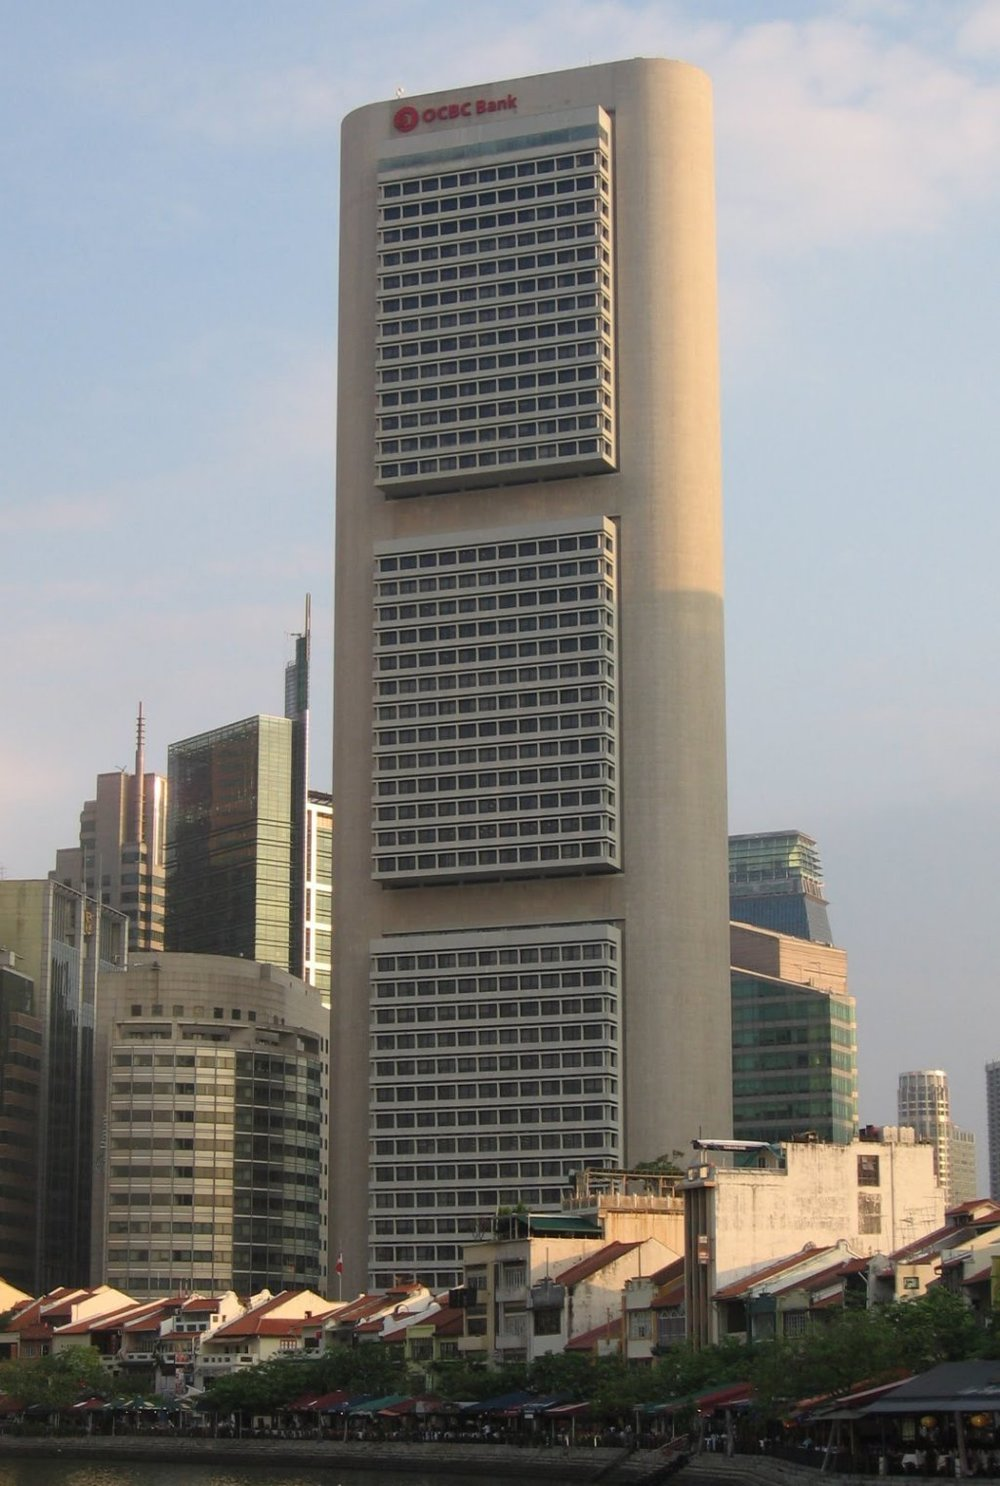 Oversea-Chinese Banking Corporation Centre – Downtown Singapore, 1976